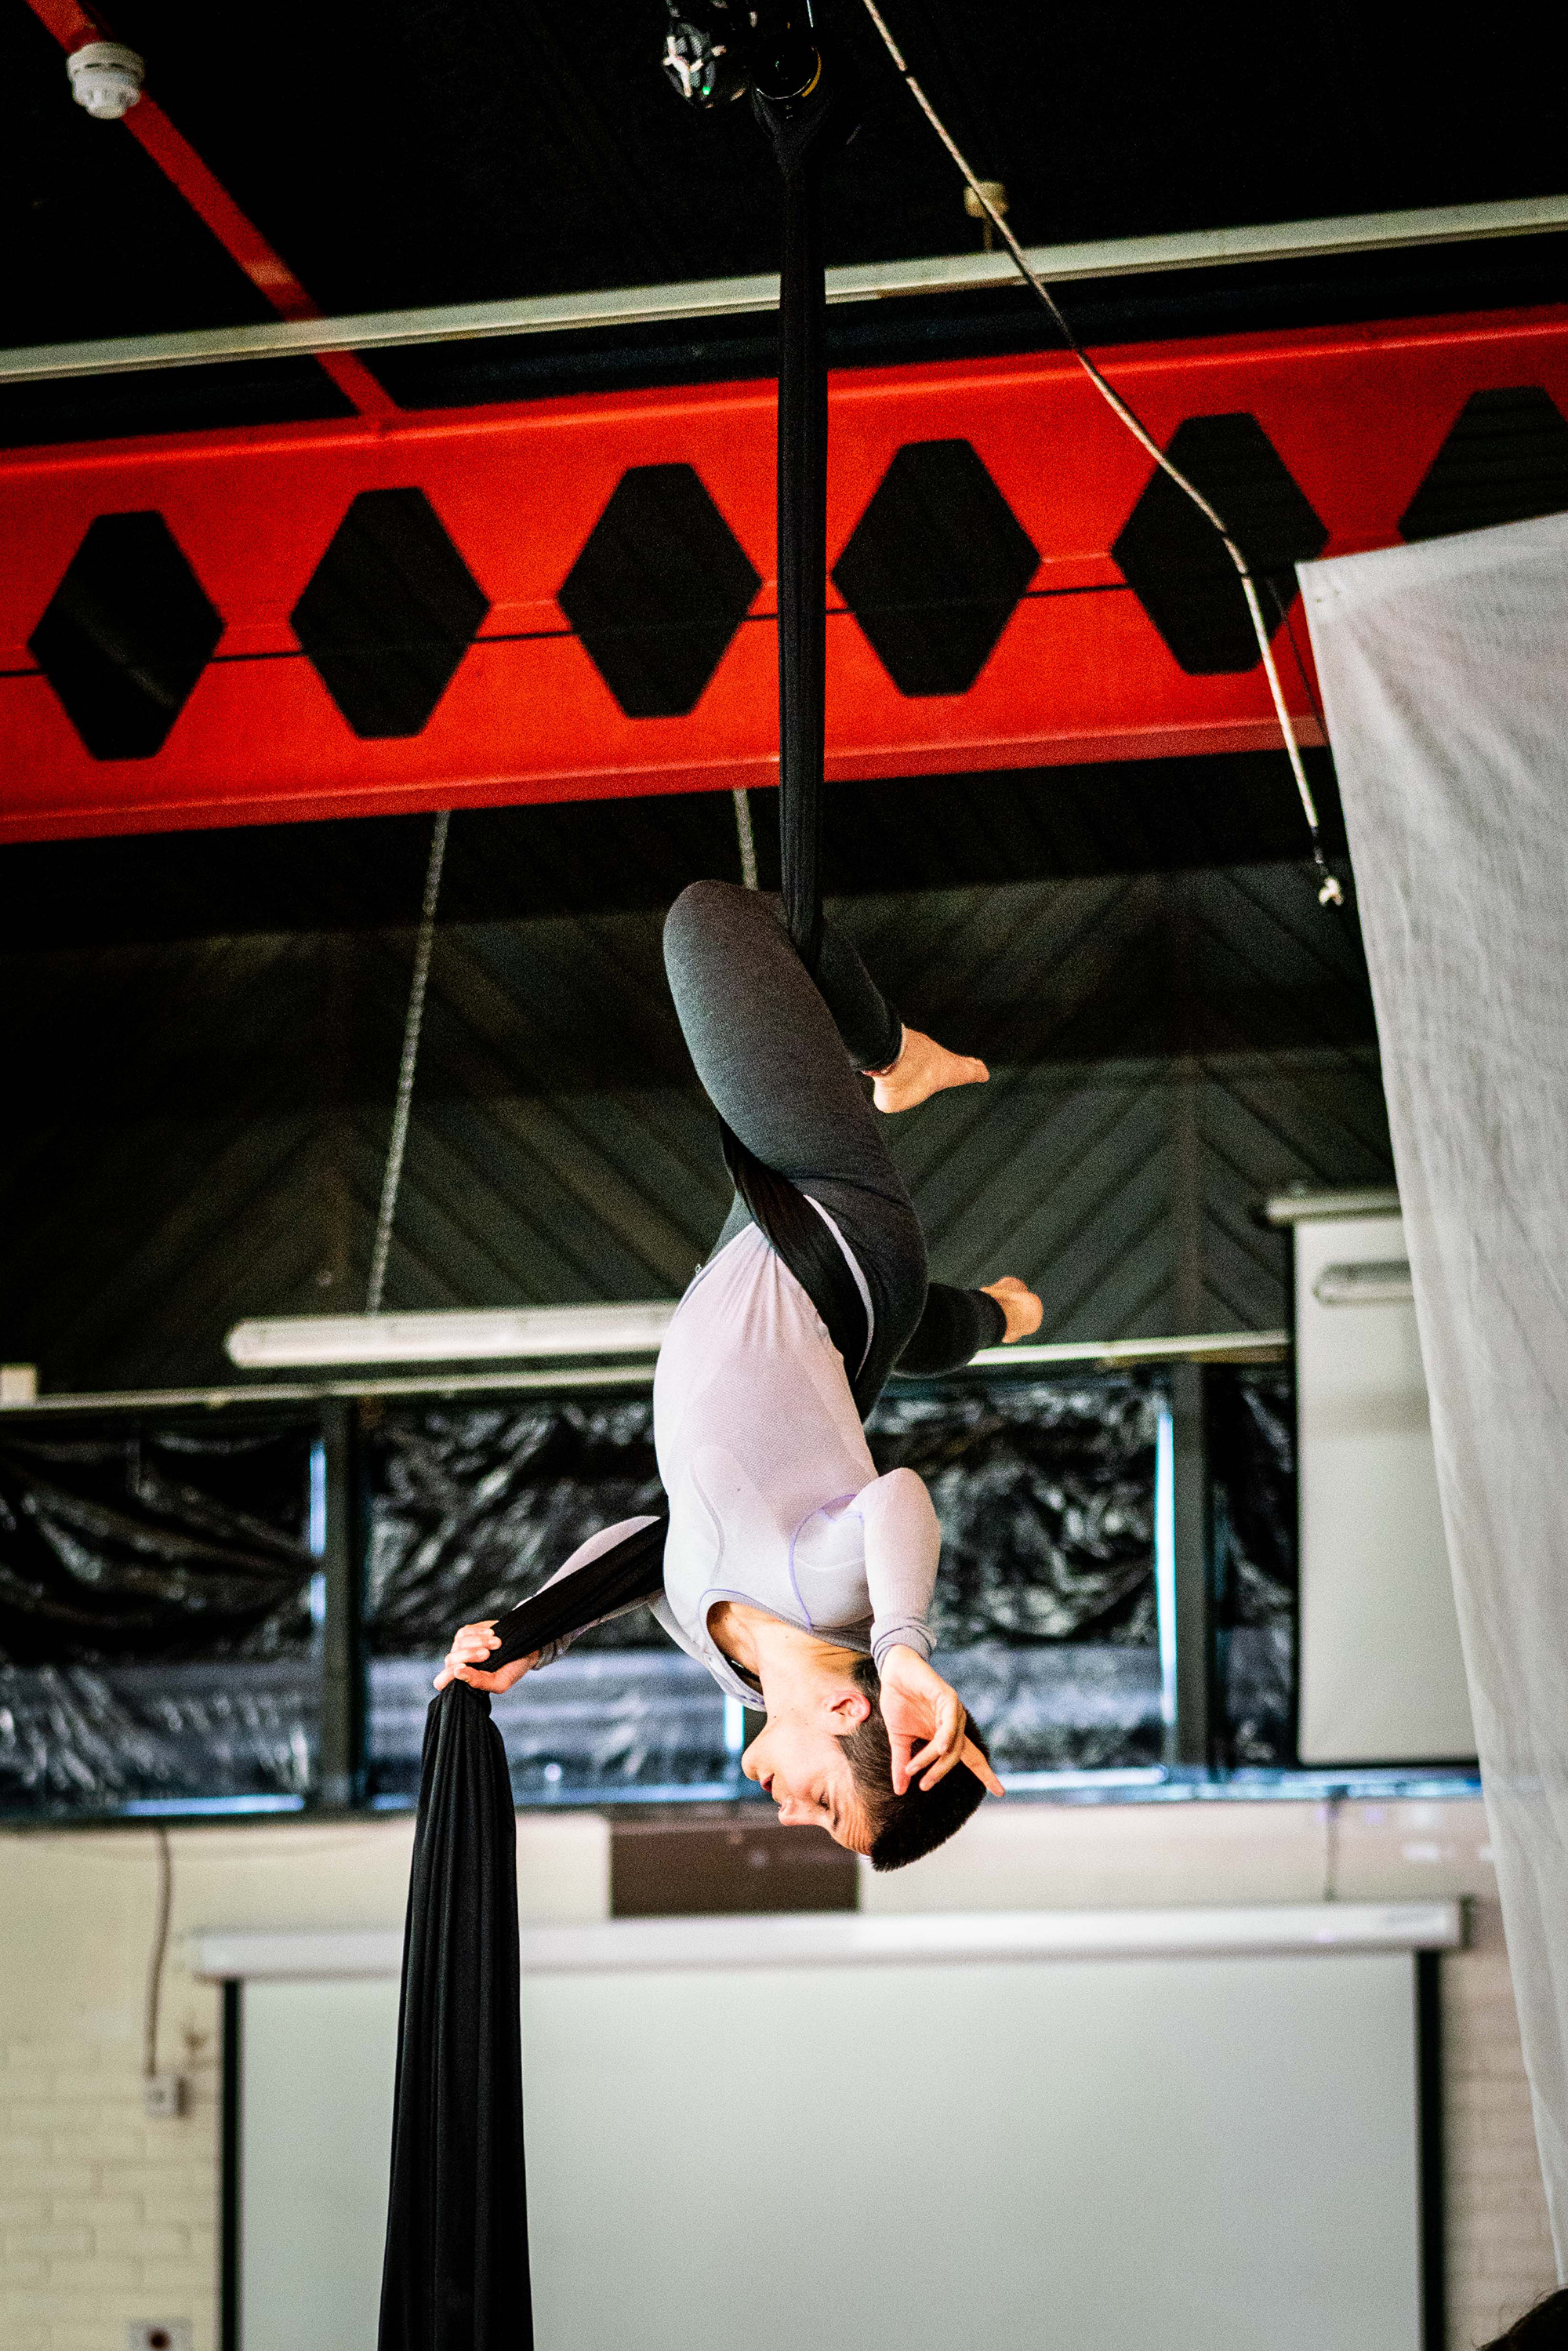 A full shot of a white woman with cropped dark hair hanging upside down from an aerial silk. She looks like she is instructing someone beneath her.